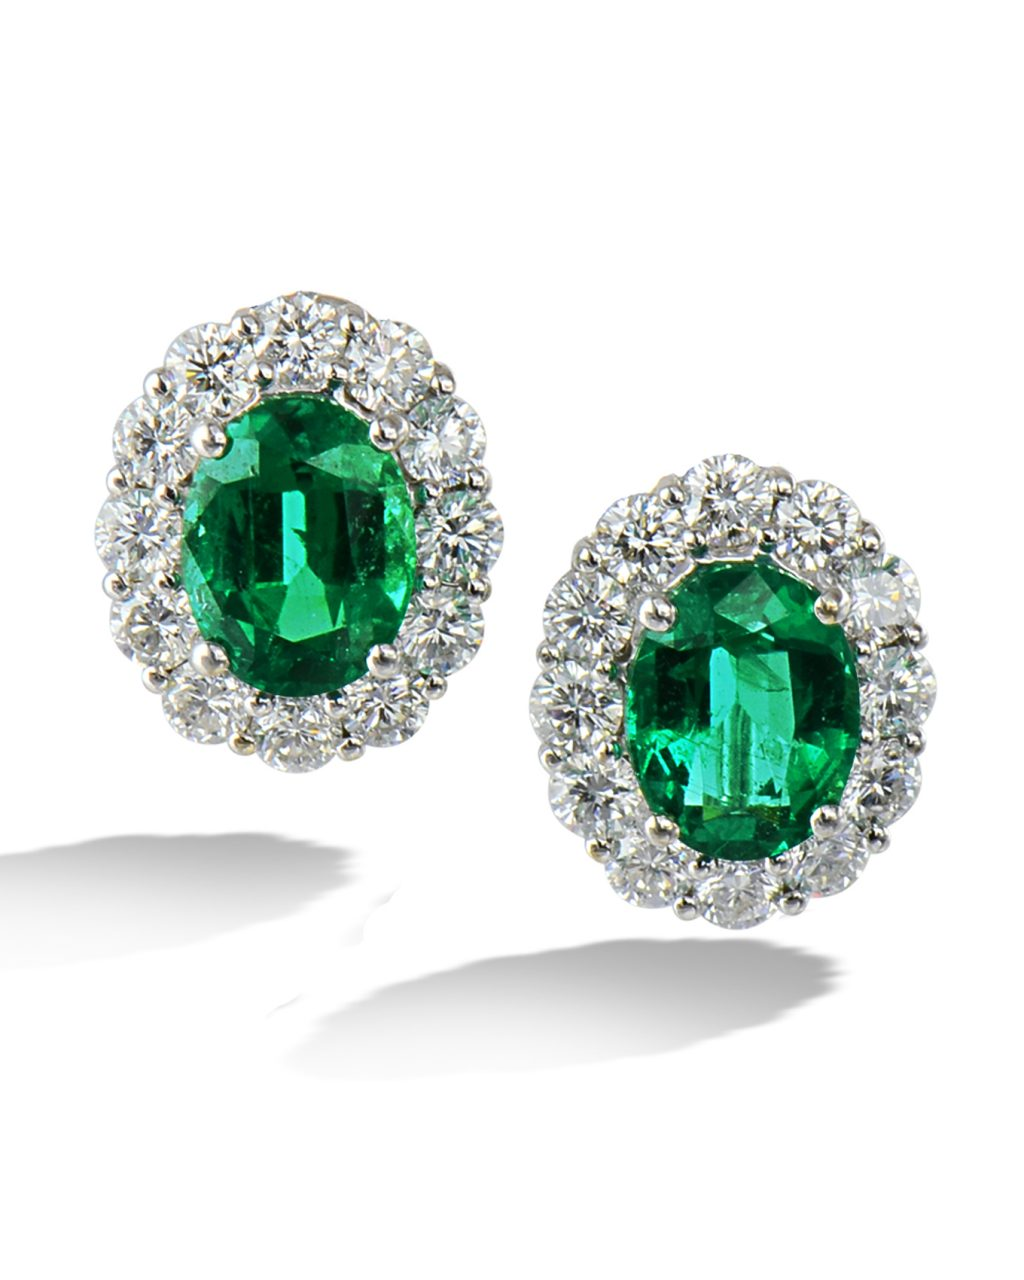 Emerald and diamond clip earrings